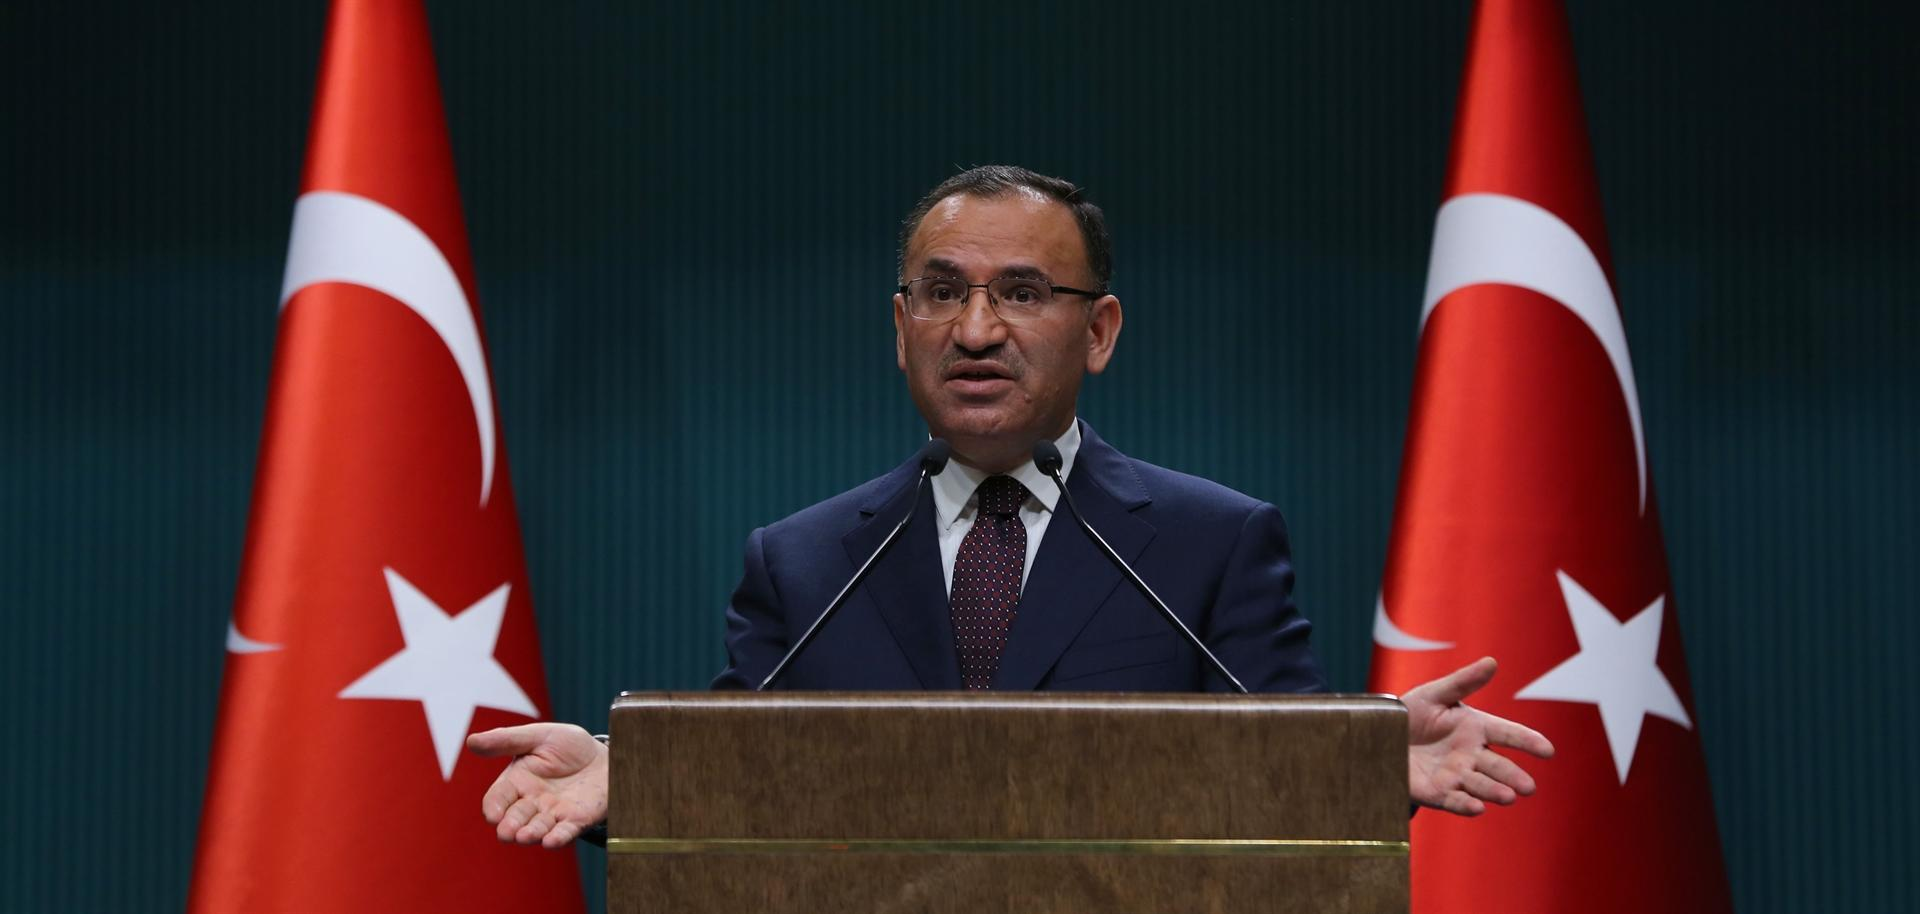 Deputy PM Bozdağ: Turkey has warned Germany over mosque attacks